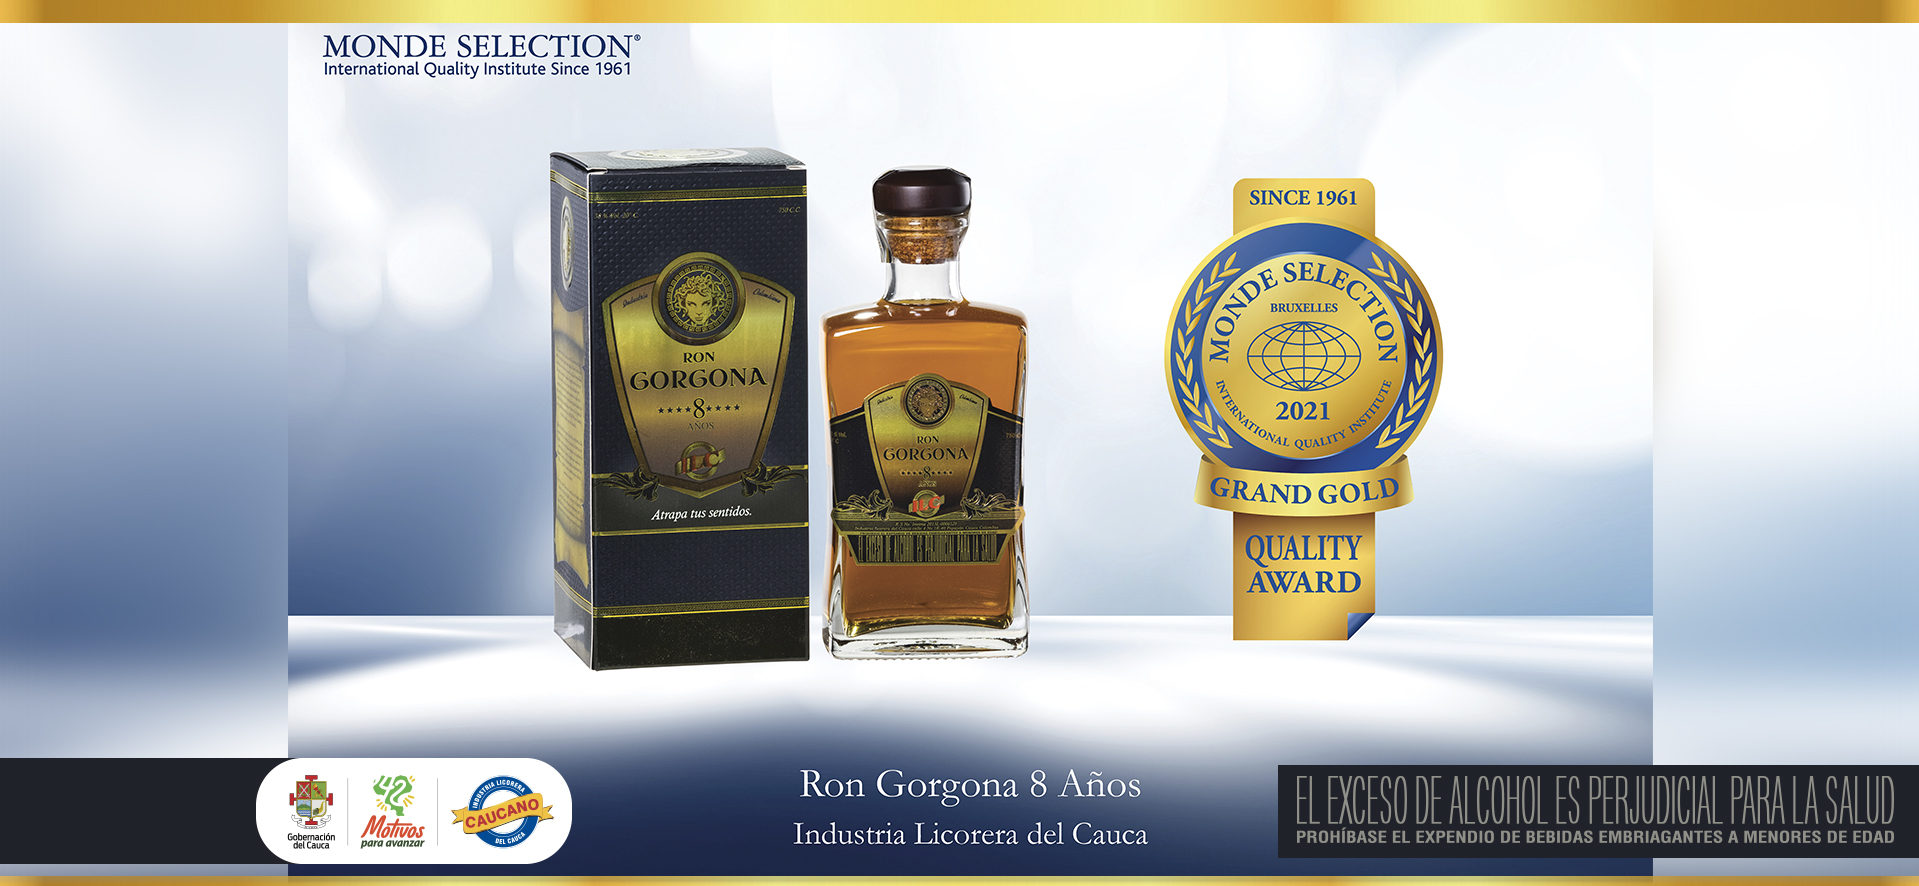 MONDE SELECTION RON GORGONA